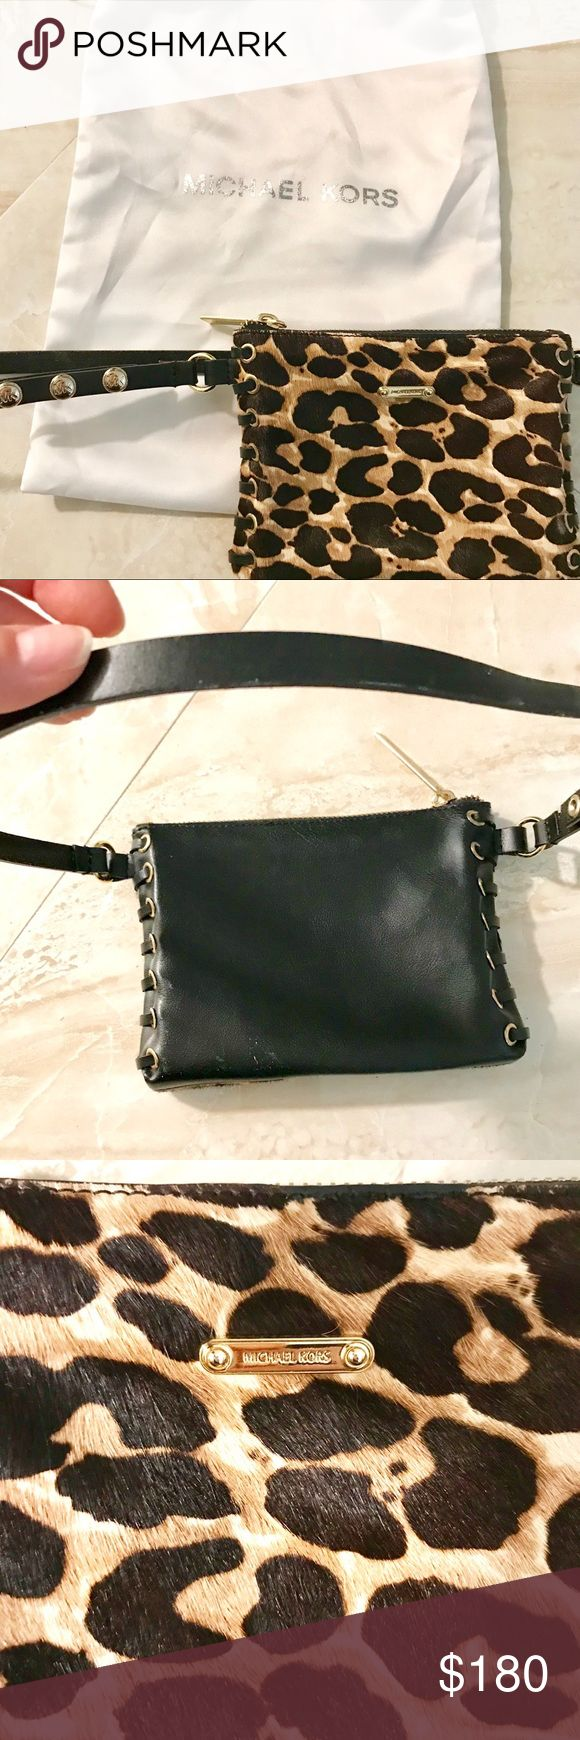 Authentic Michael Kors leather clutch /belt New ! Gorgeous Black leather ( back side ) with leopard hair (front) reversible belt with woven sides and Gold embellishments.   Size Small to Medium. 24 in waits to 36 in. Adjustable leather belt.    New wot. Come as with original dust bag.  Retail 390$ Michael Kors Bags Clutches & Wristlets